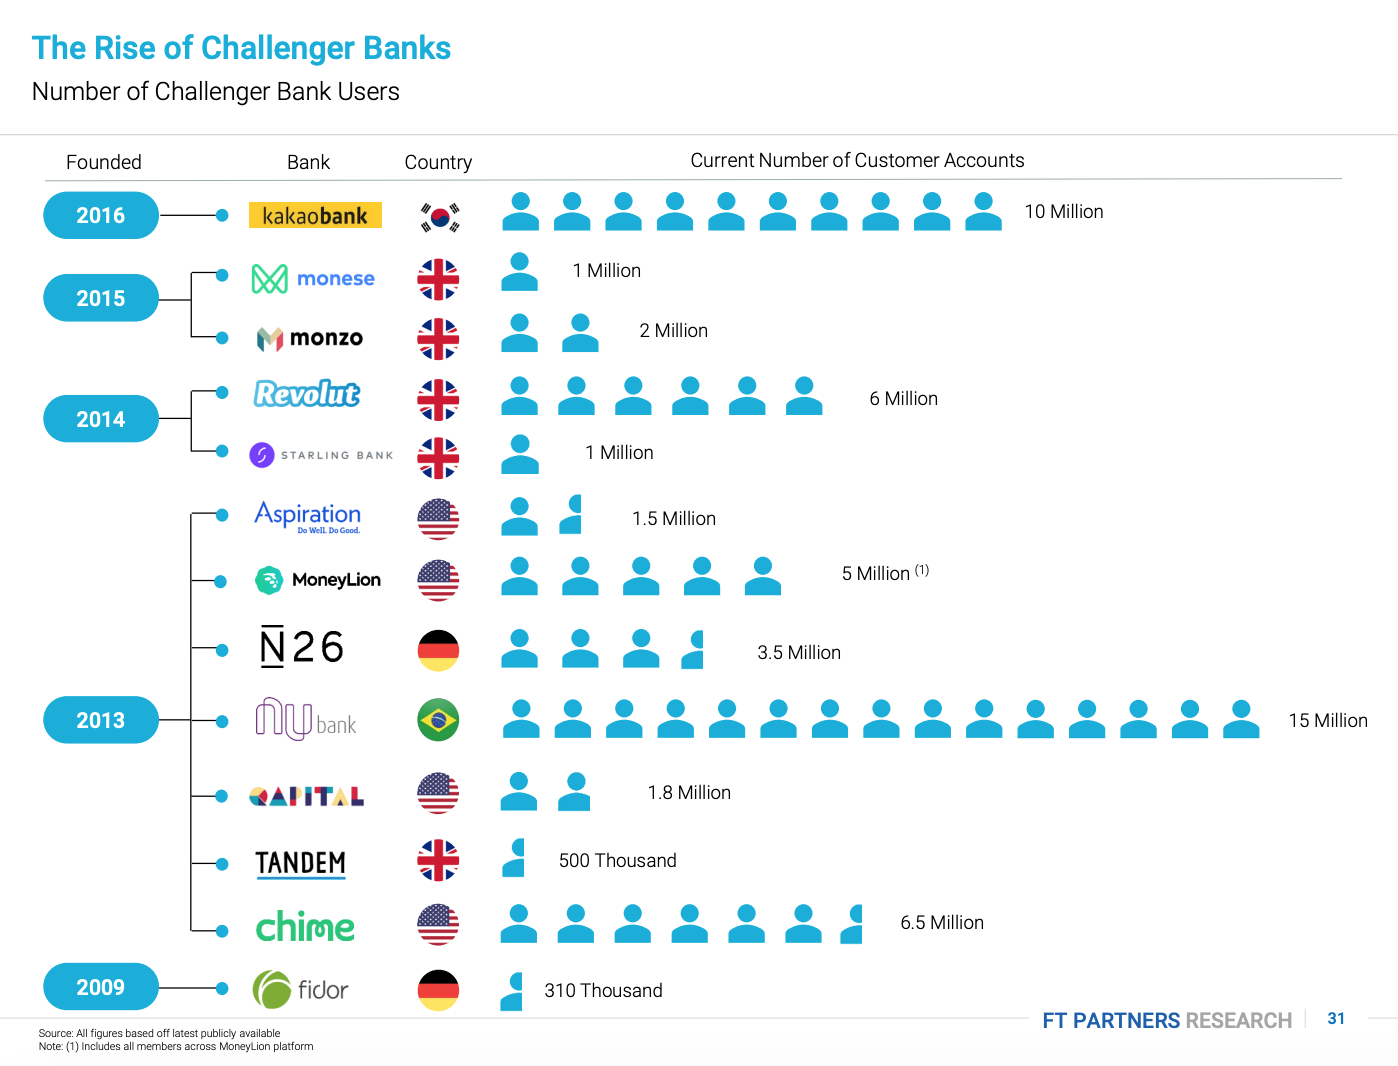 Number of Challenger Bank Users, The Rise of Challenger Banks- Are the Apps Taking Over?, FT Partners, January 2020